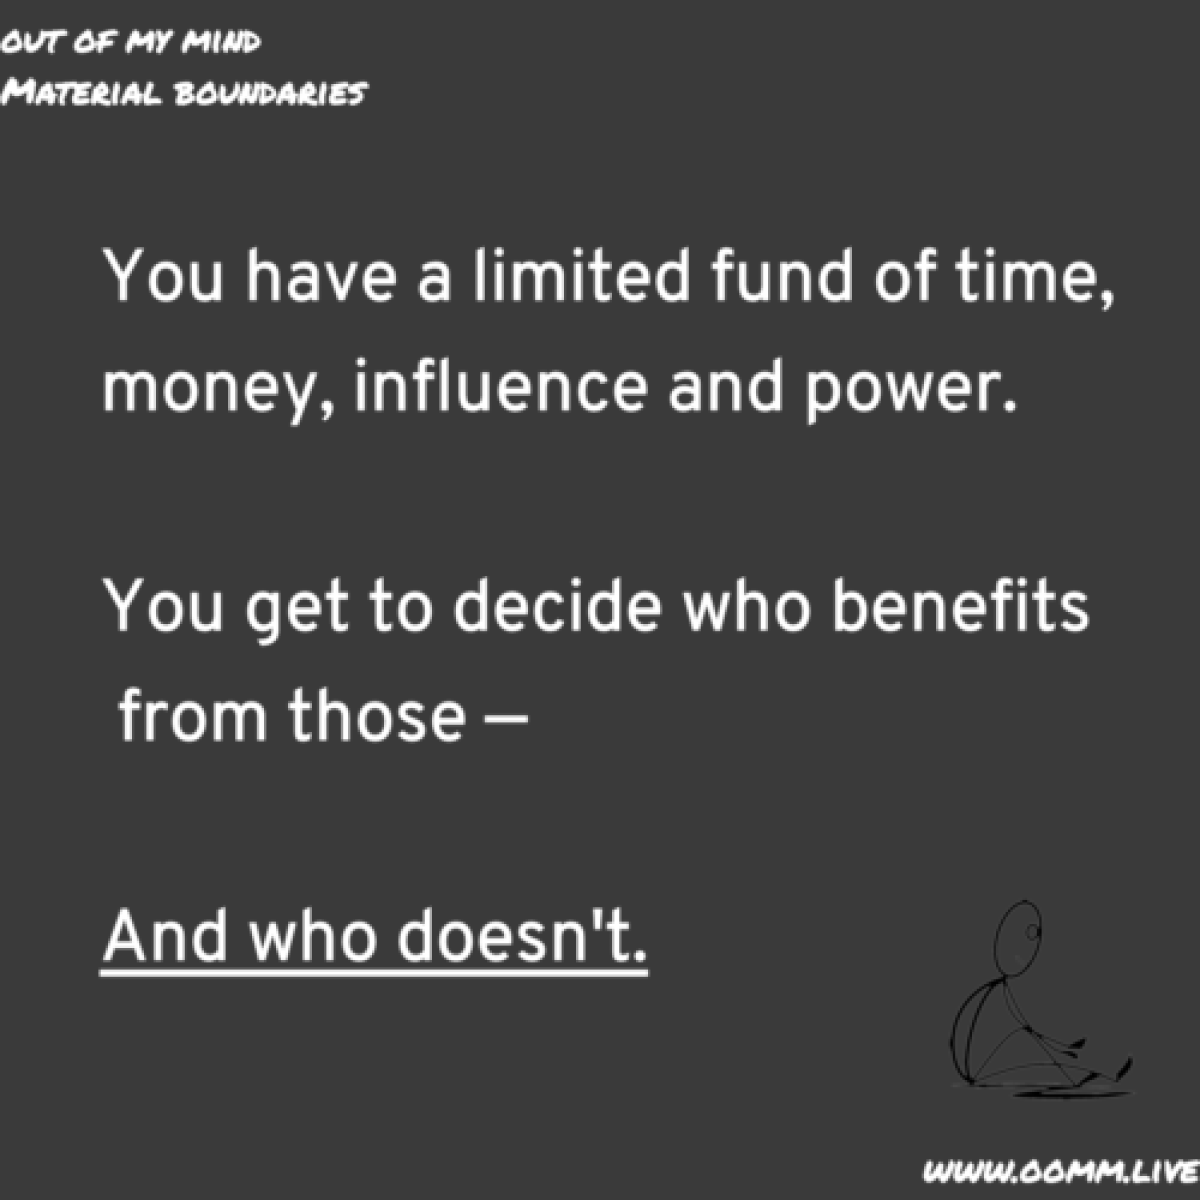 material boundaries. You have a limited fund of time, money, influence, and power. You get to decide who benefts from those and who doesn't